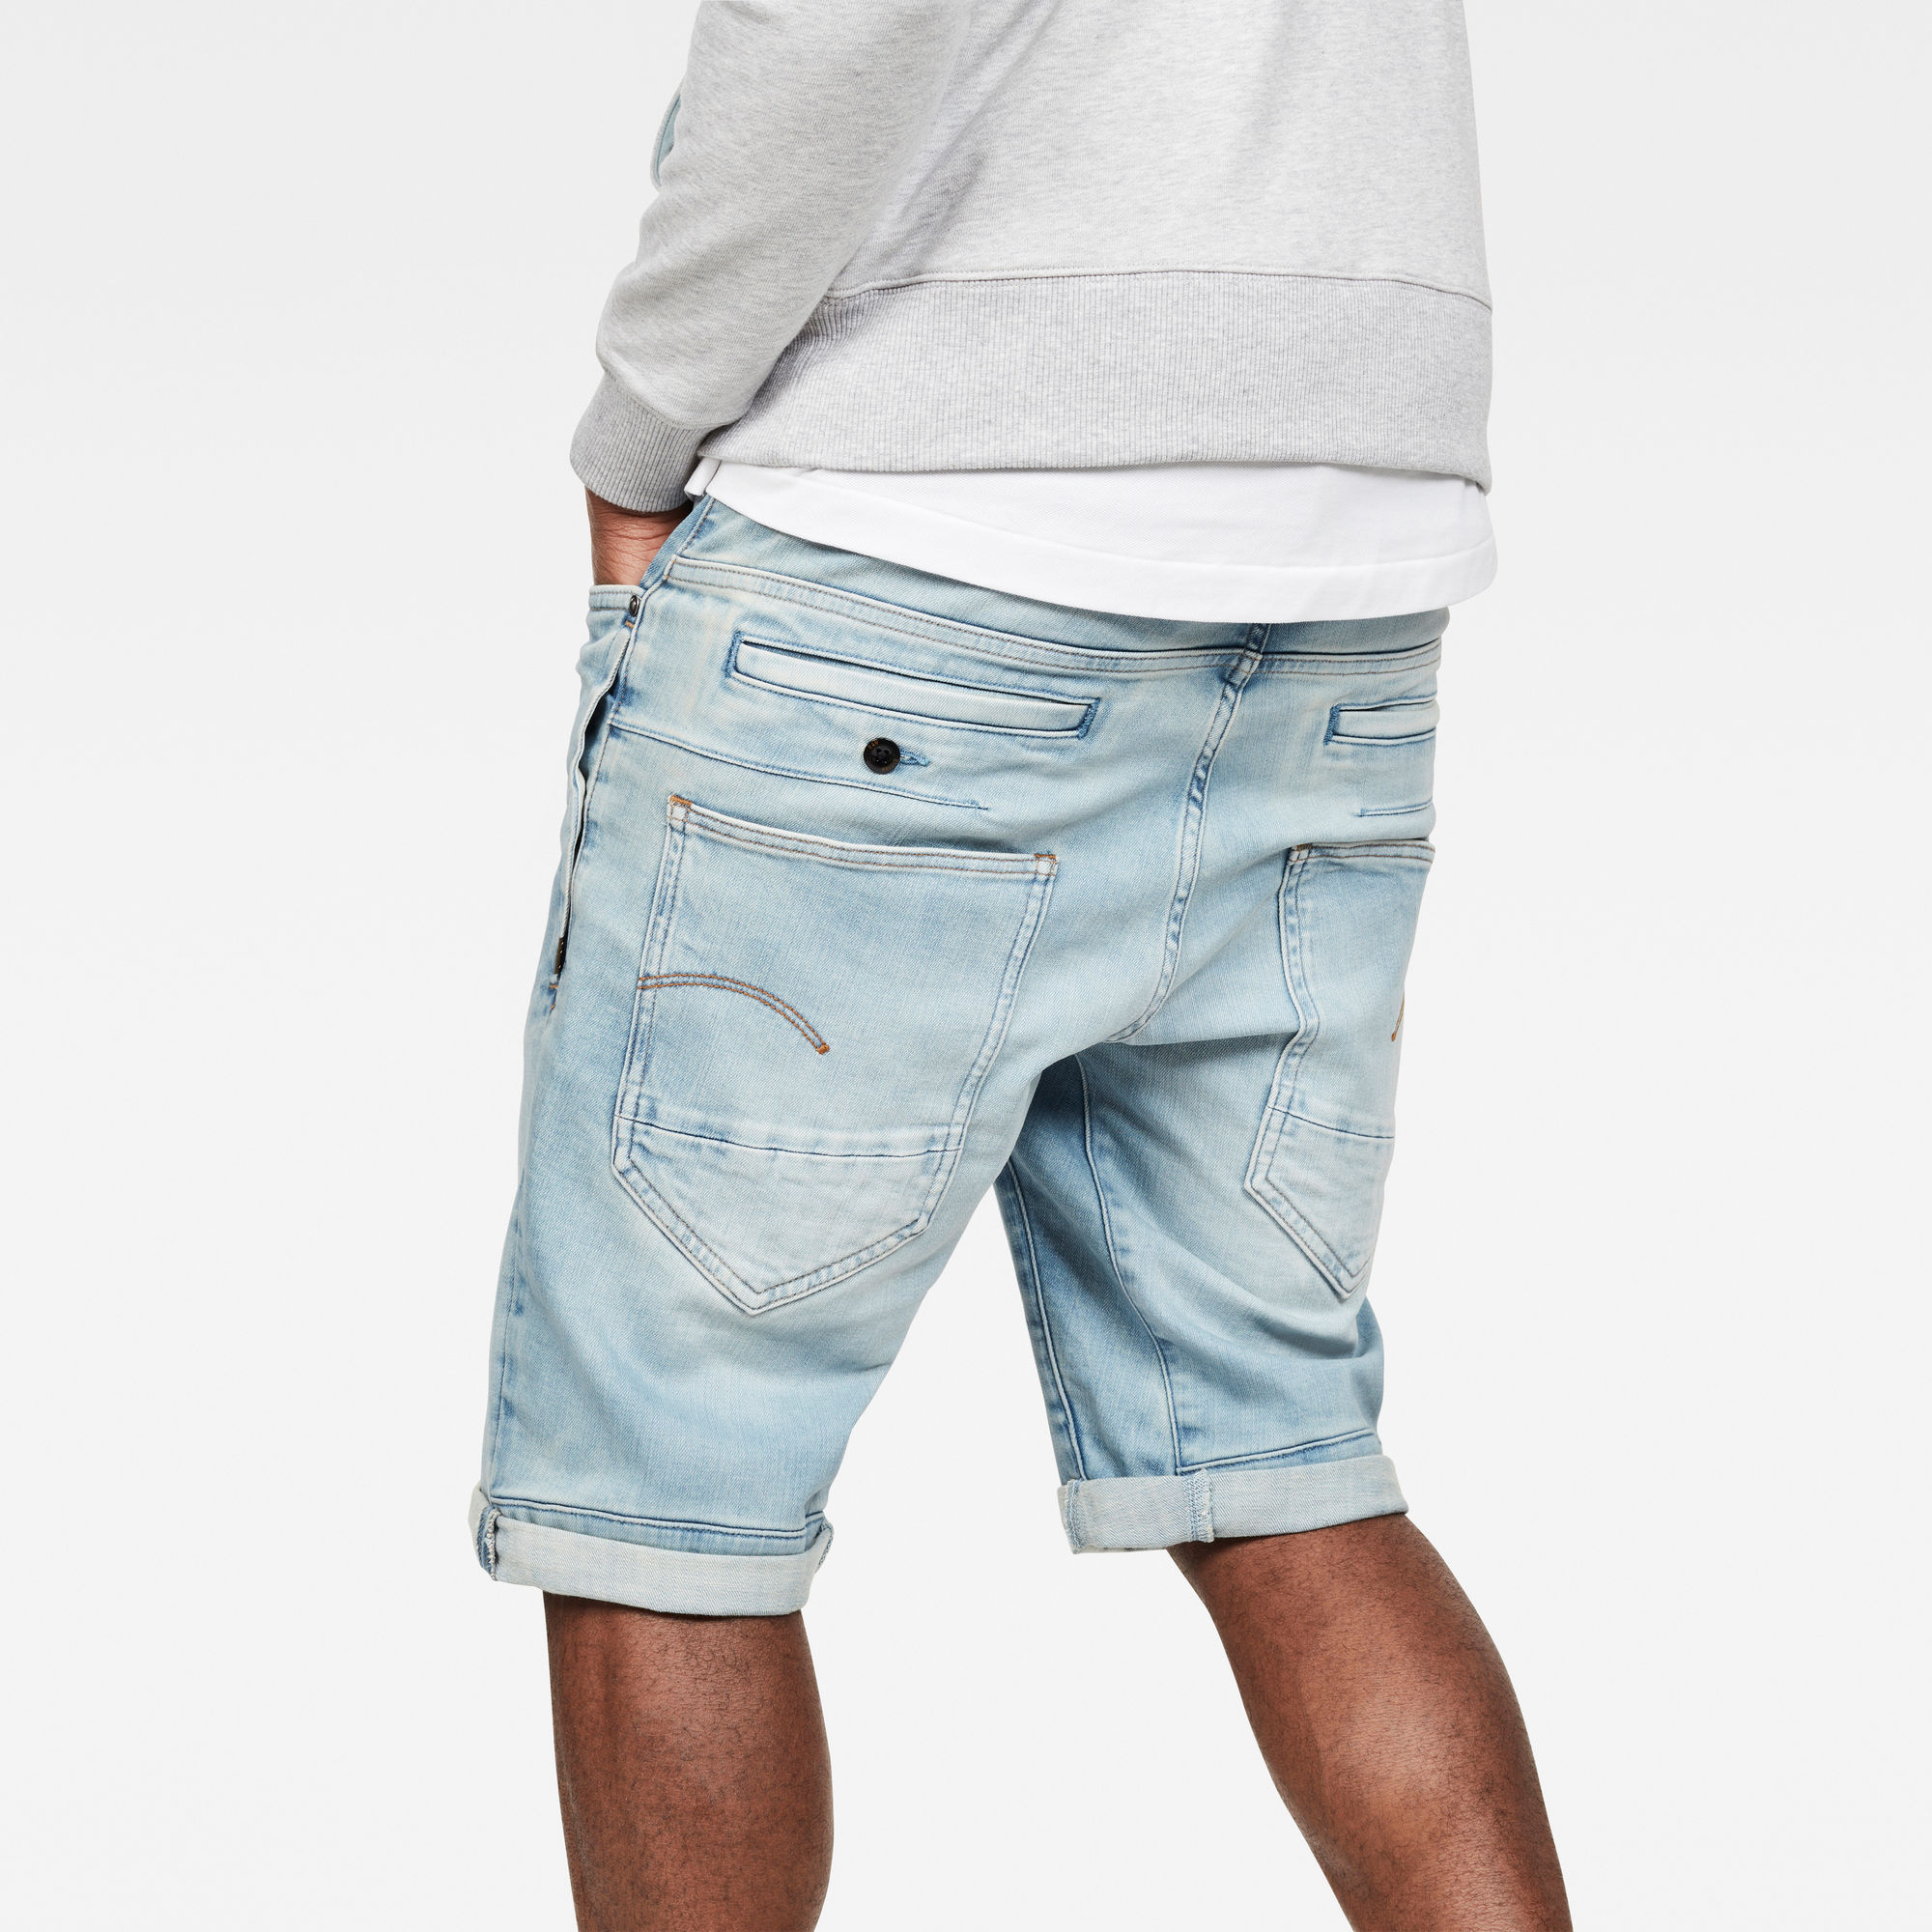 G-Star RAW D-Staq 3D Short